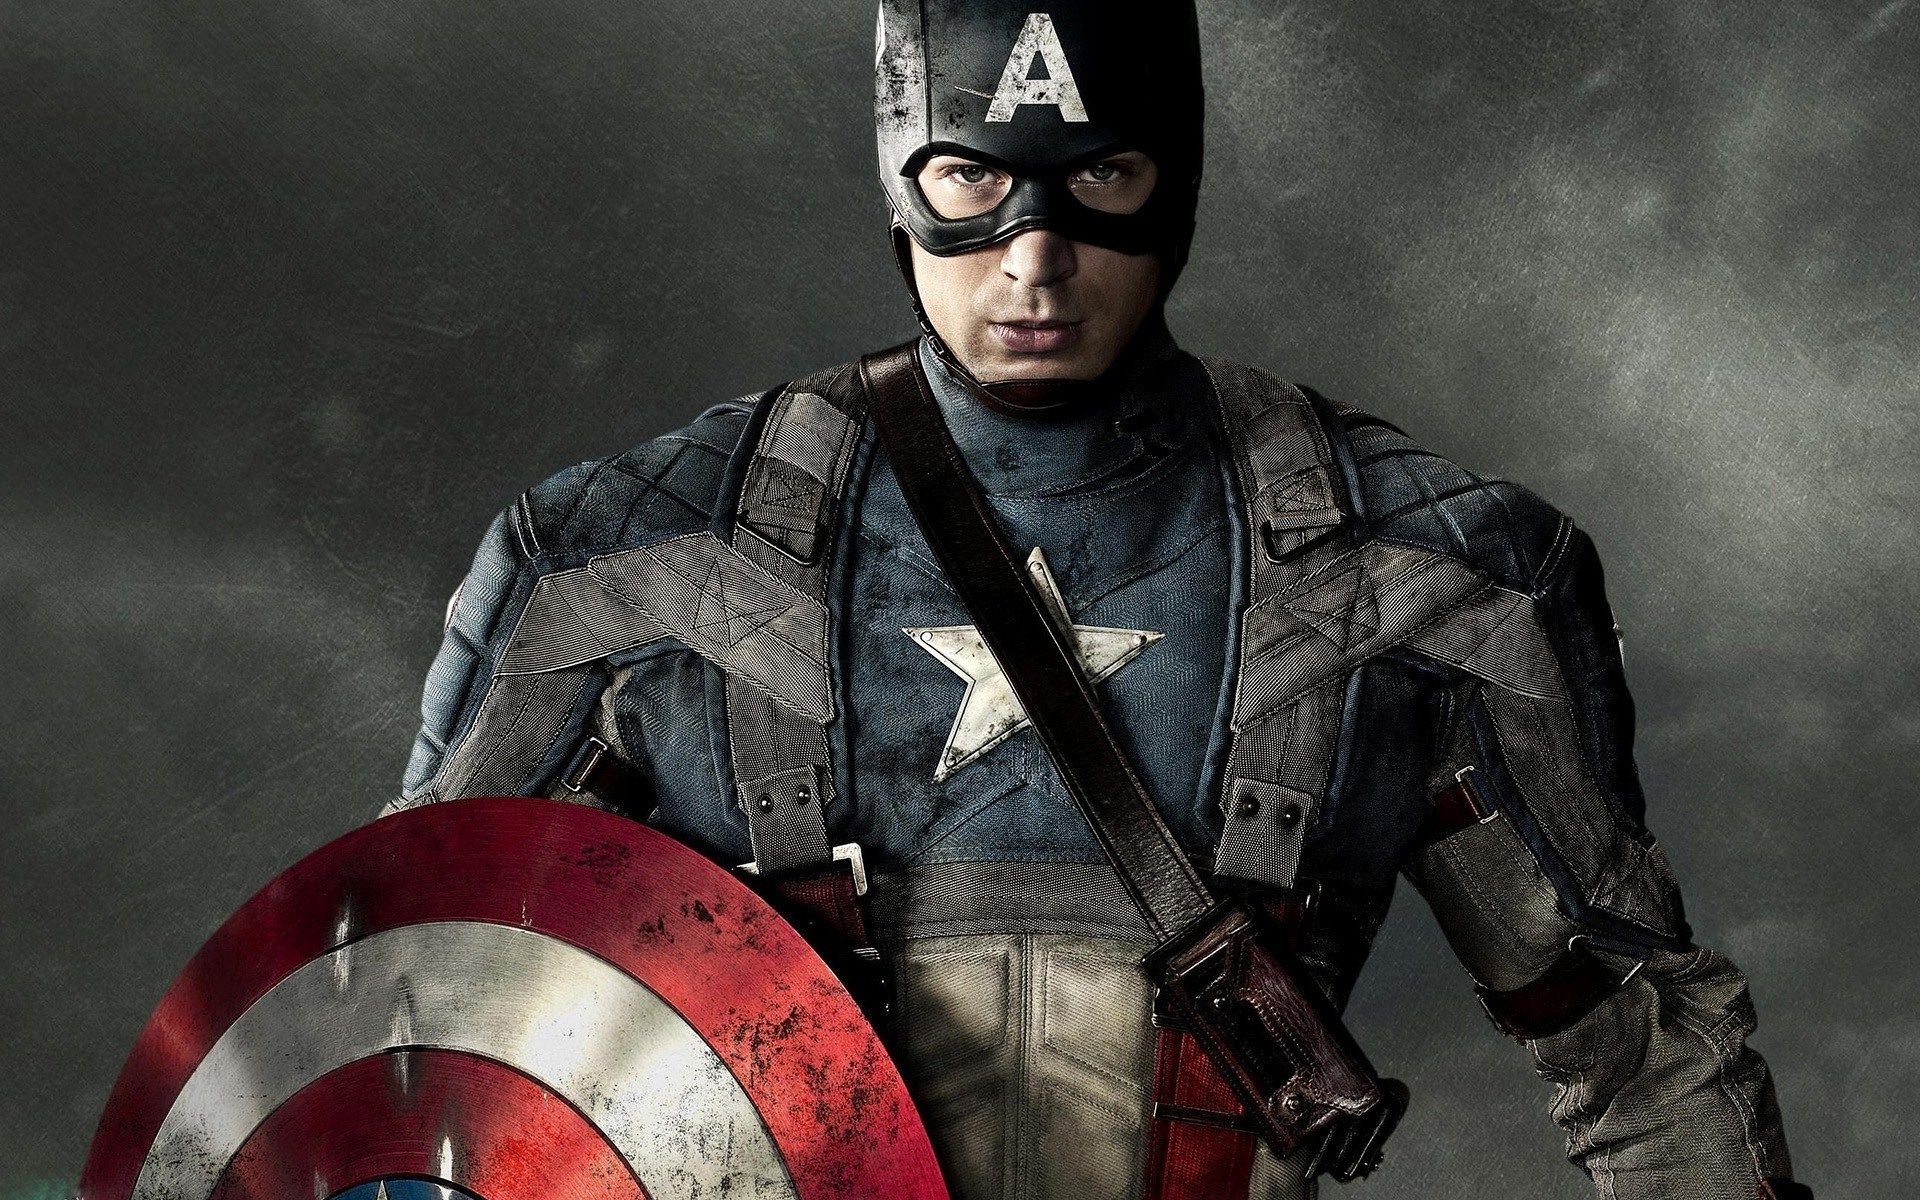 Captain America: The First Avenger Wallpapers, Pictures, Images